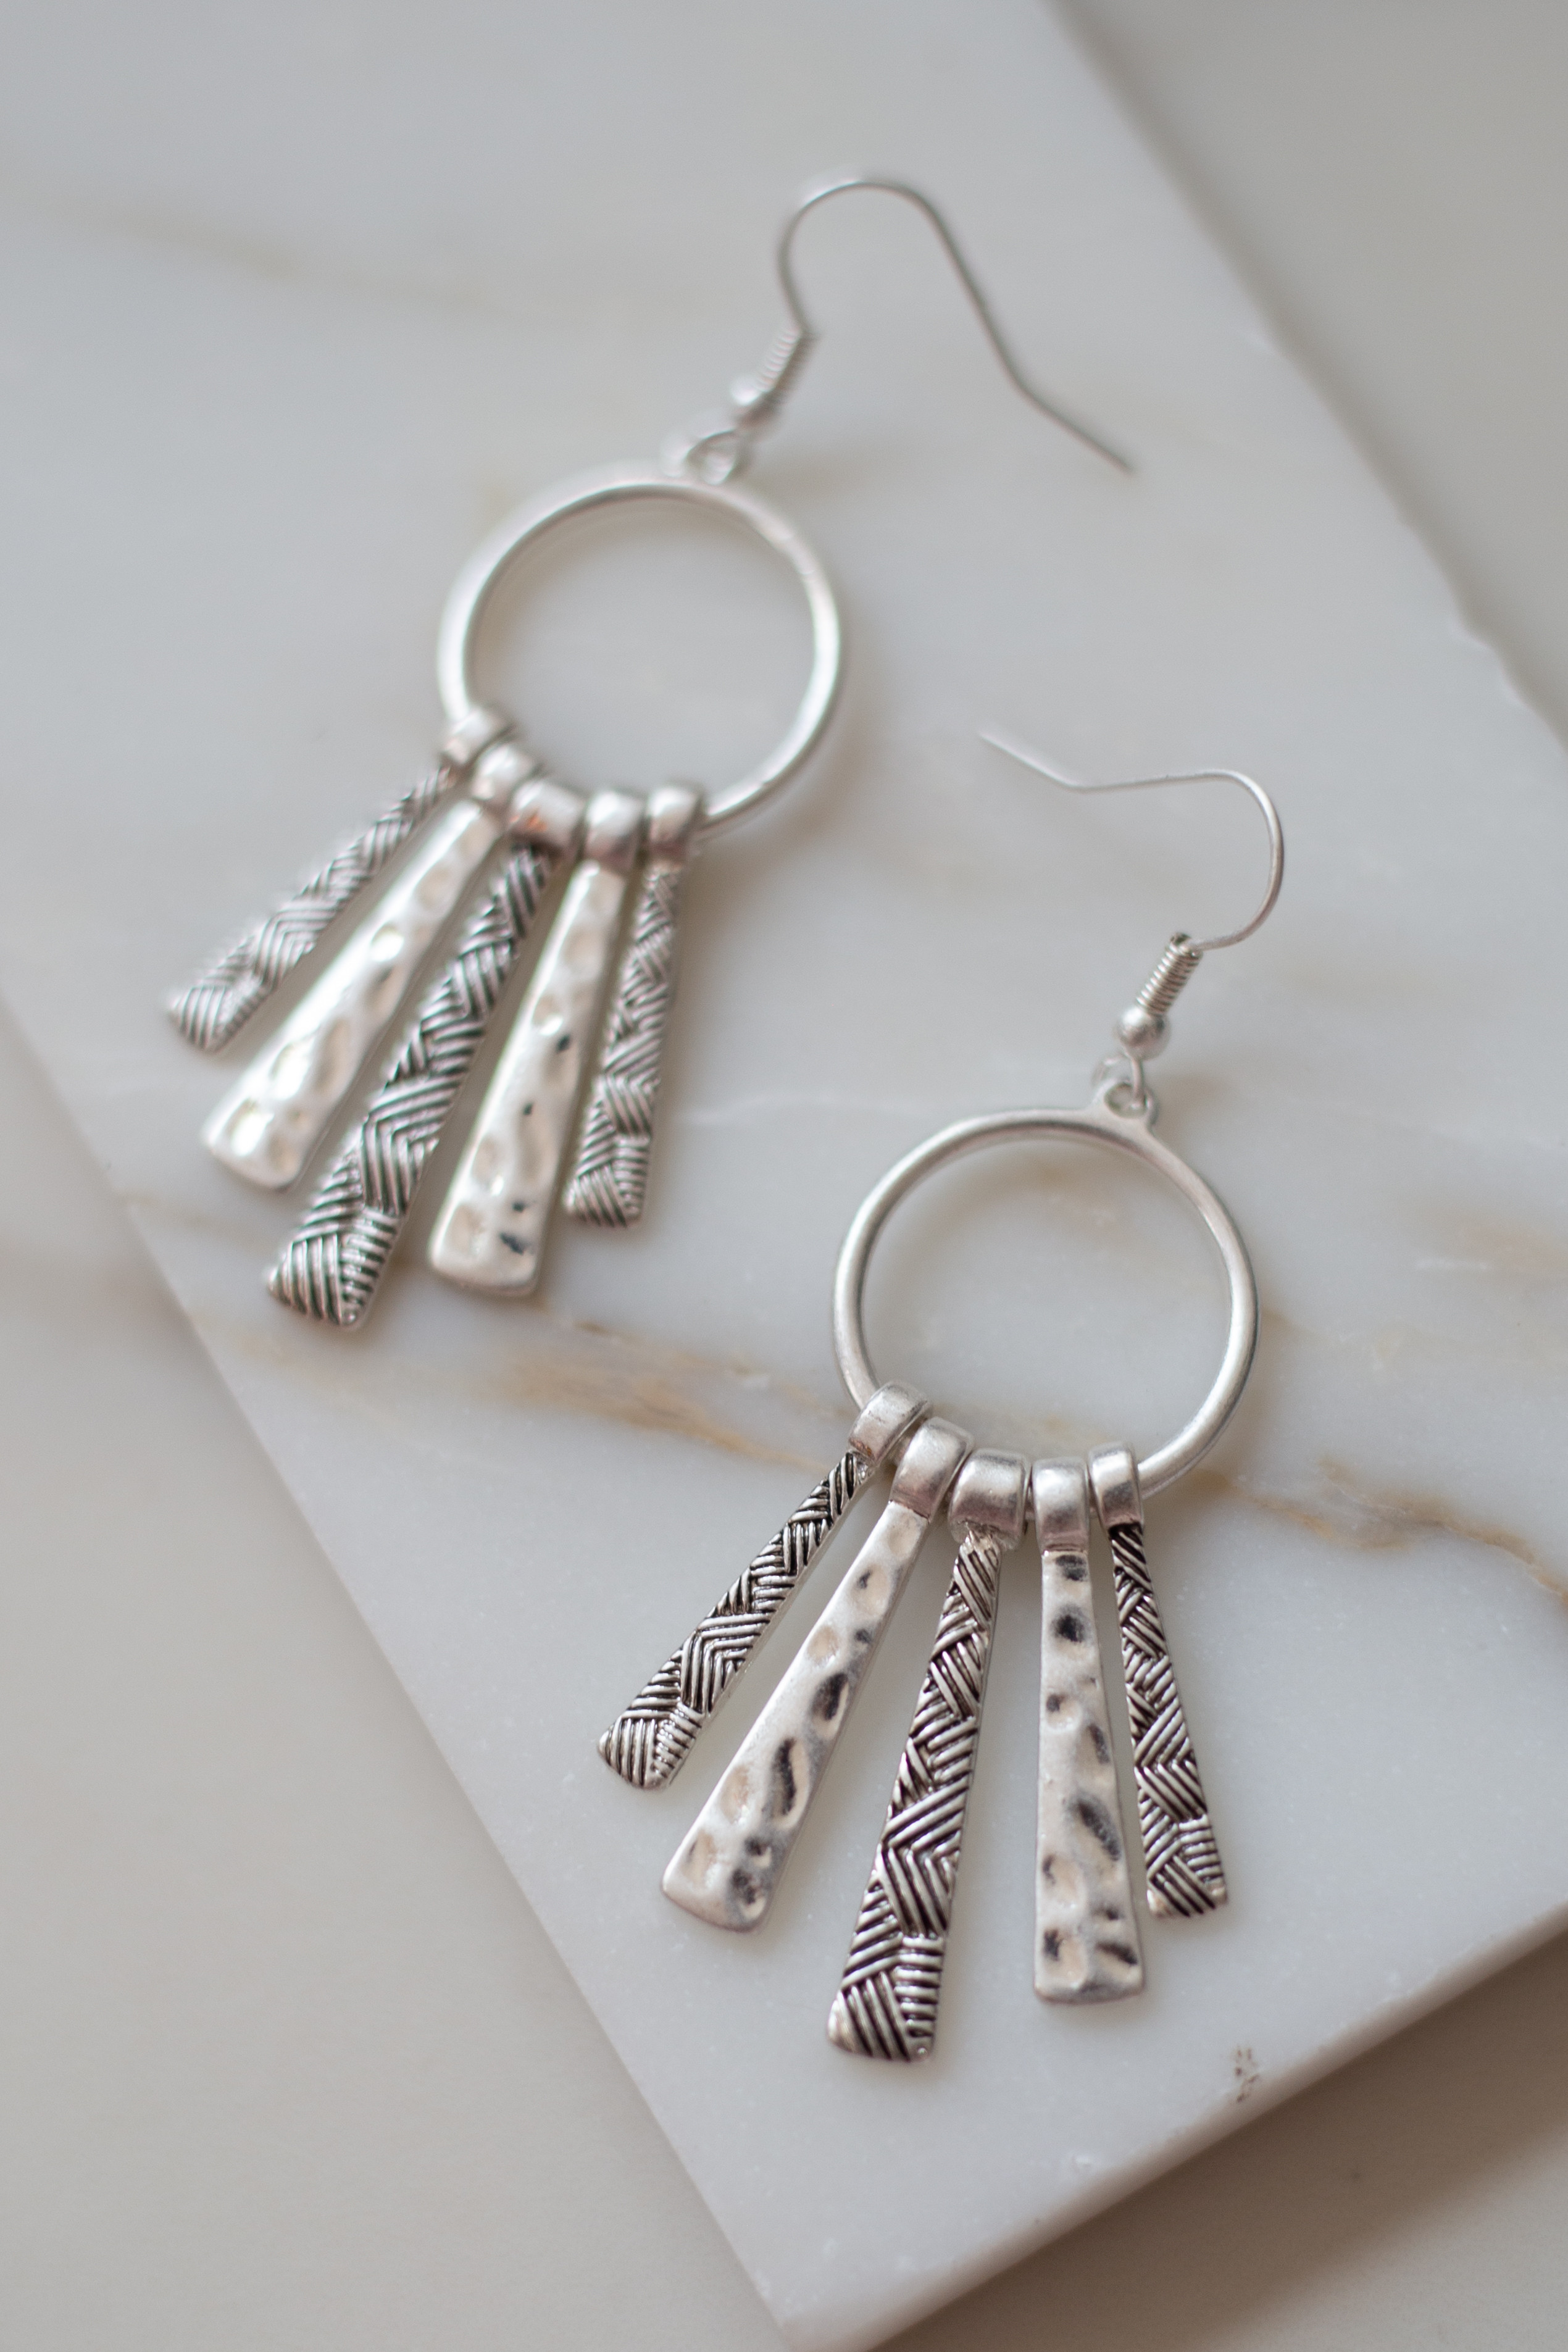 Silver Hoop Earrings with Textured Bar Details